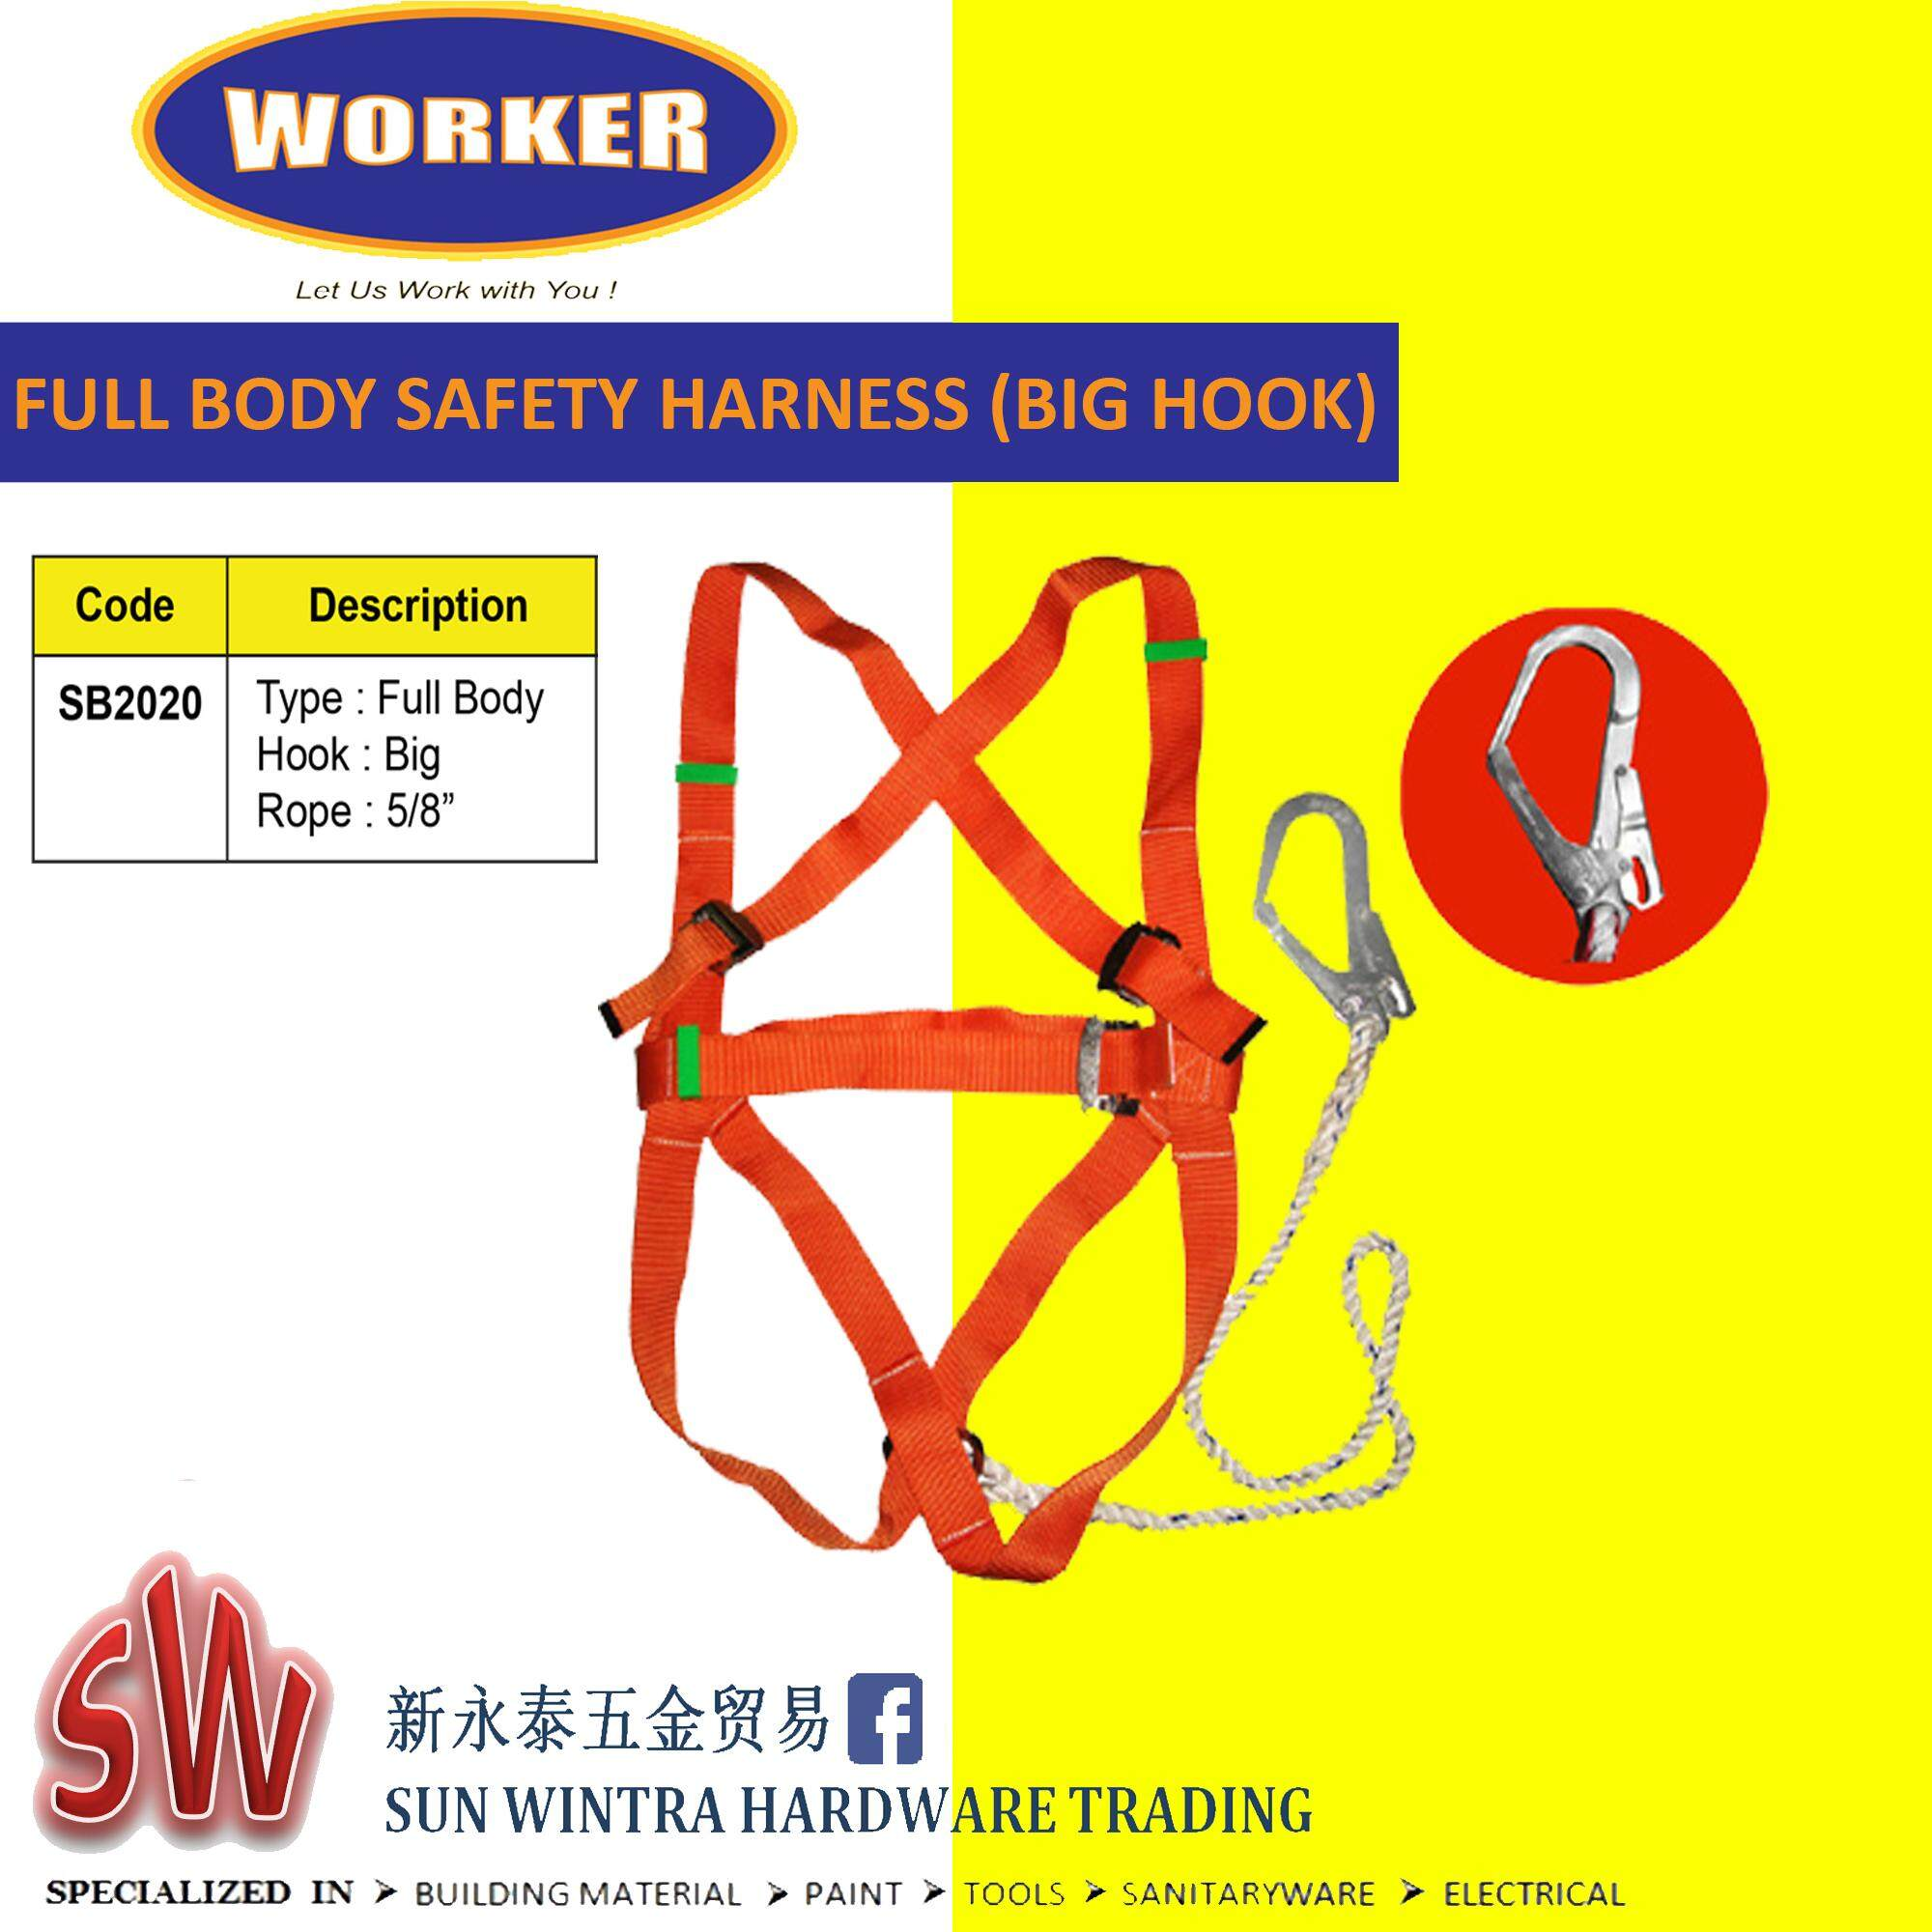 Worker Full Body Safety Harness (Big Hook) #2020